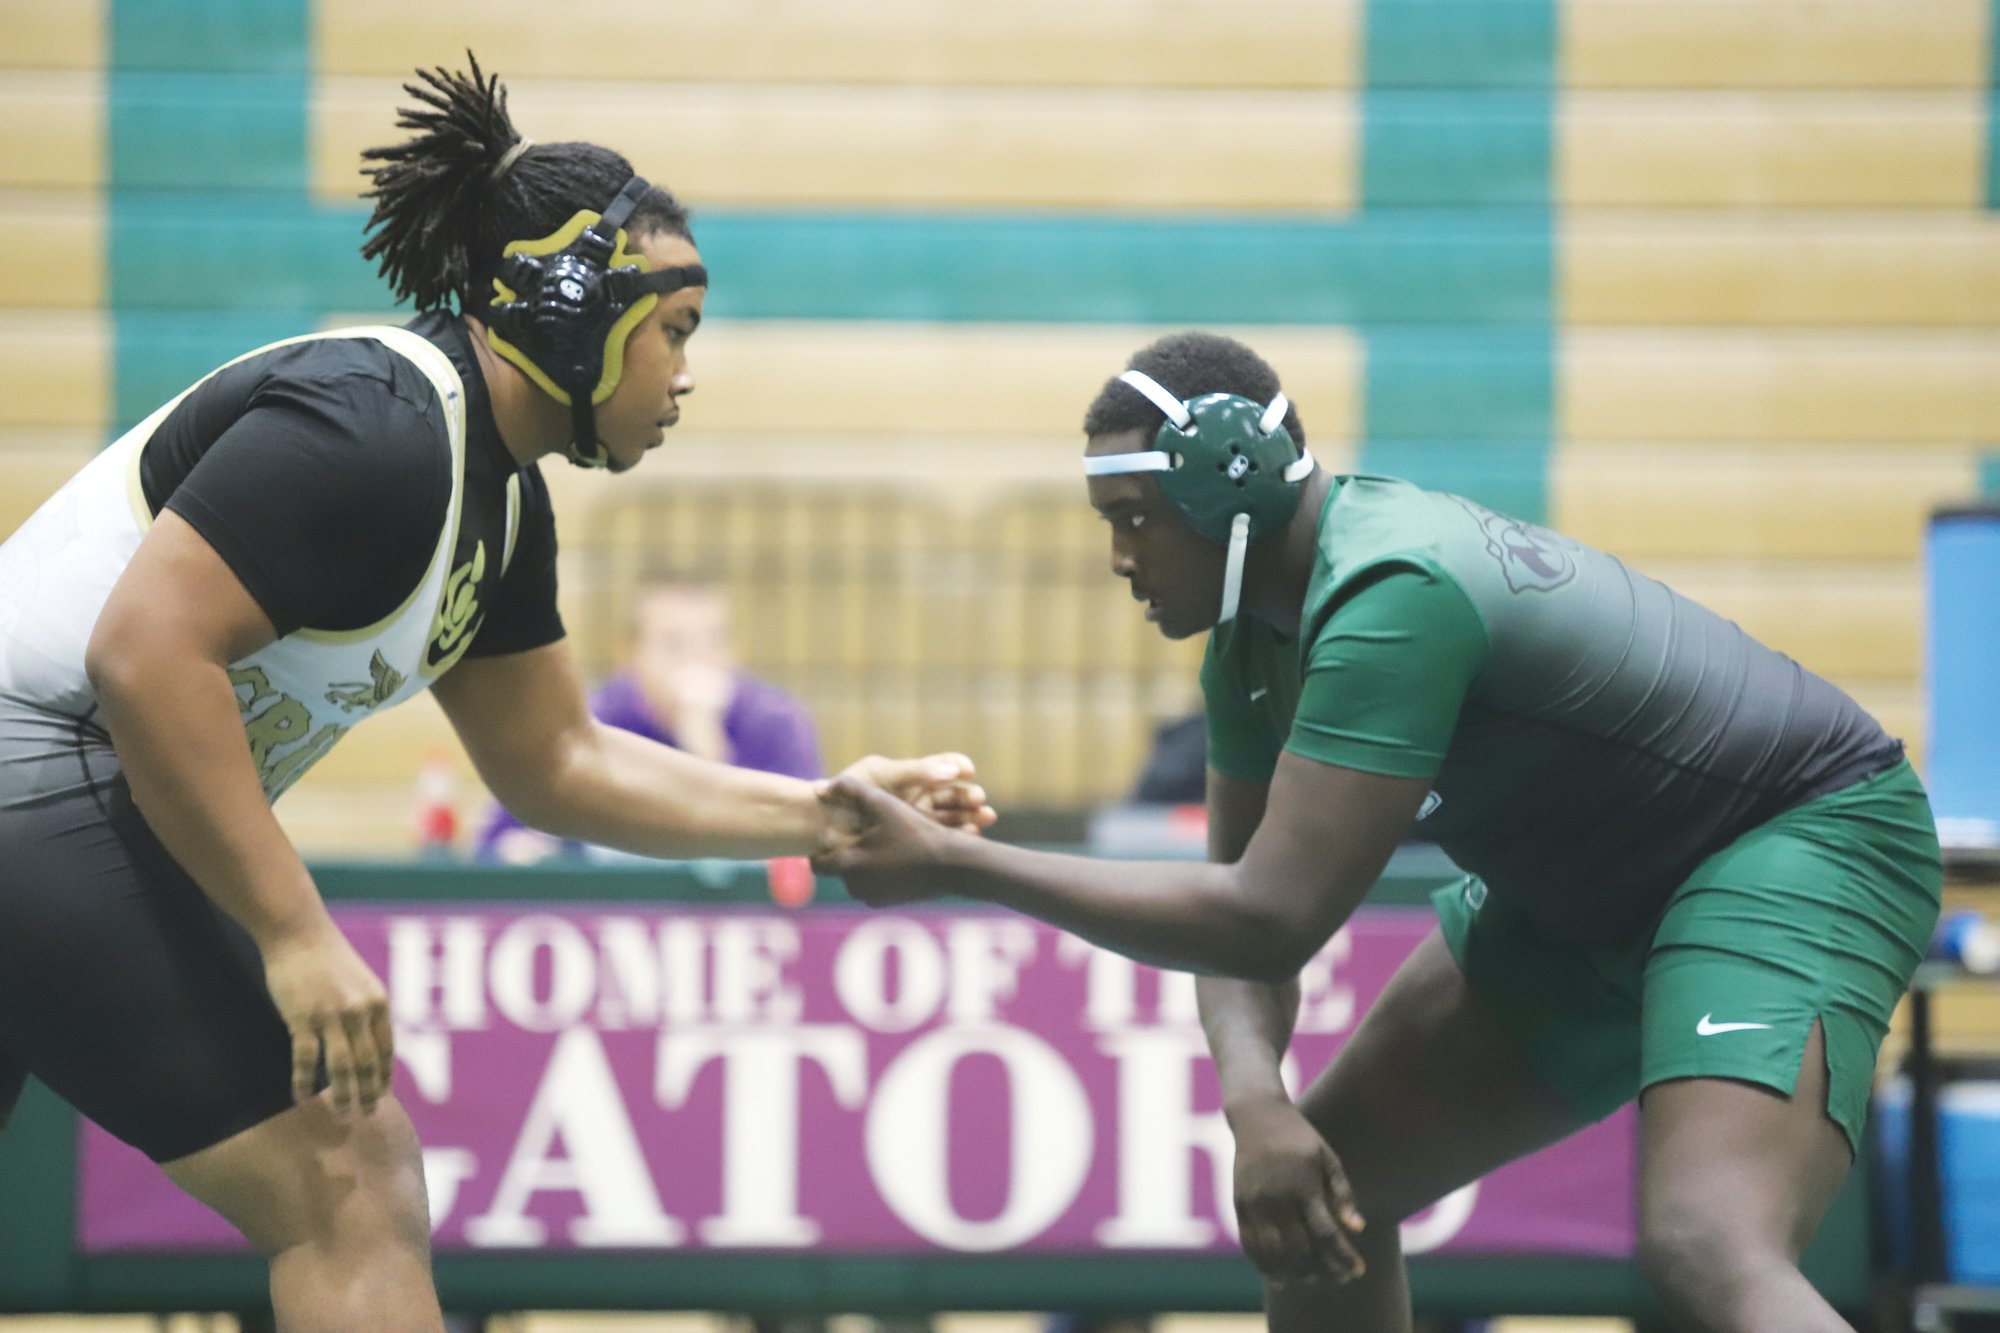 Lakewood's Stanley Boatright, right, has been one of the Gators' top wrestlers in the restart of the program after a 15-year hiatus. Boatright owns a 15-7 record in the 285-pound weight class.